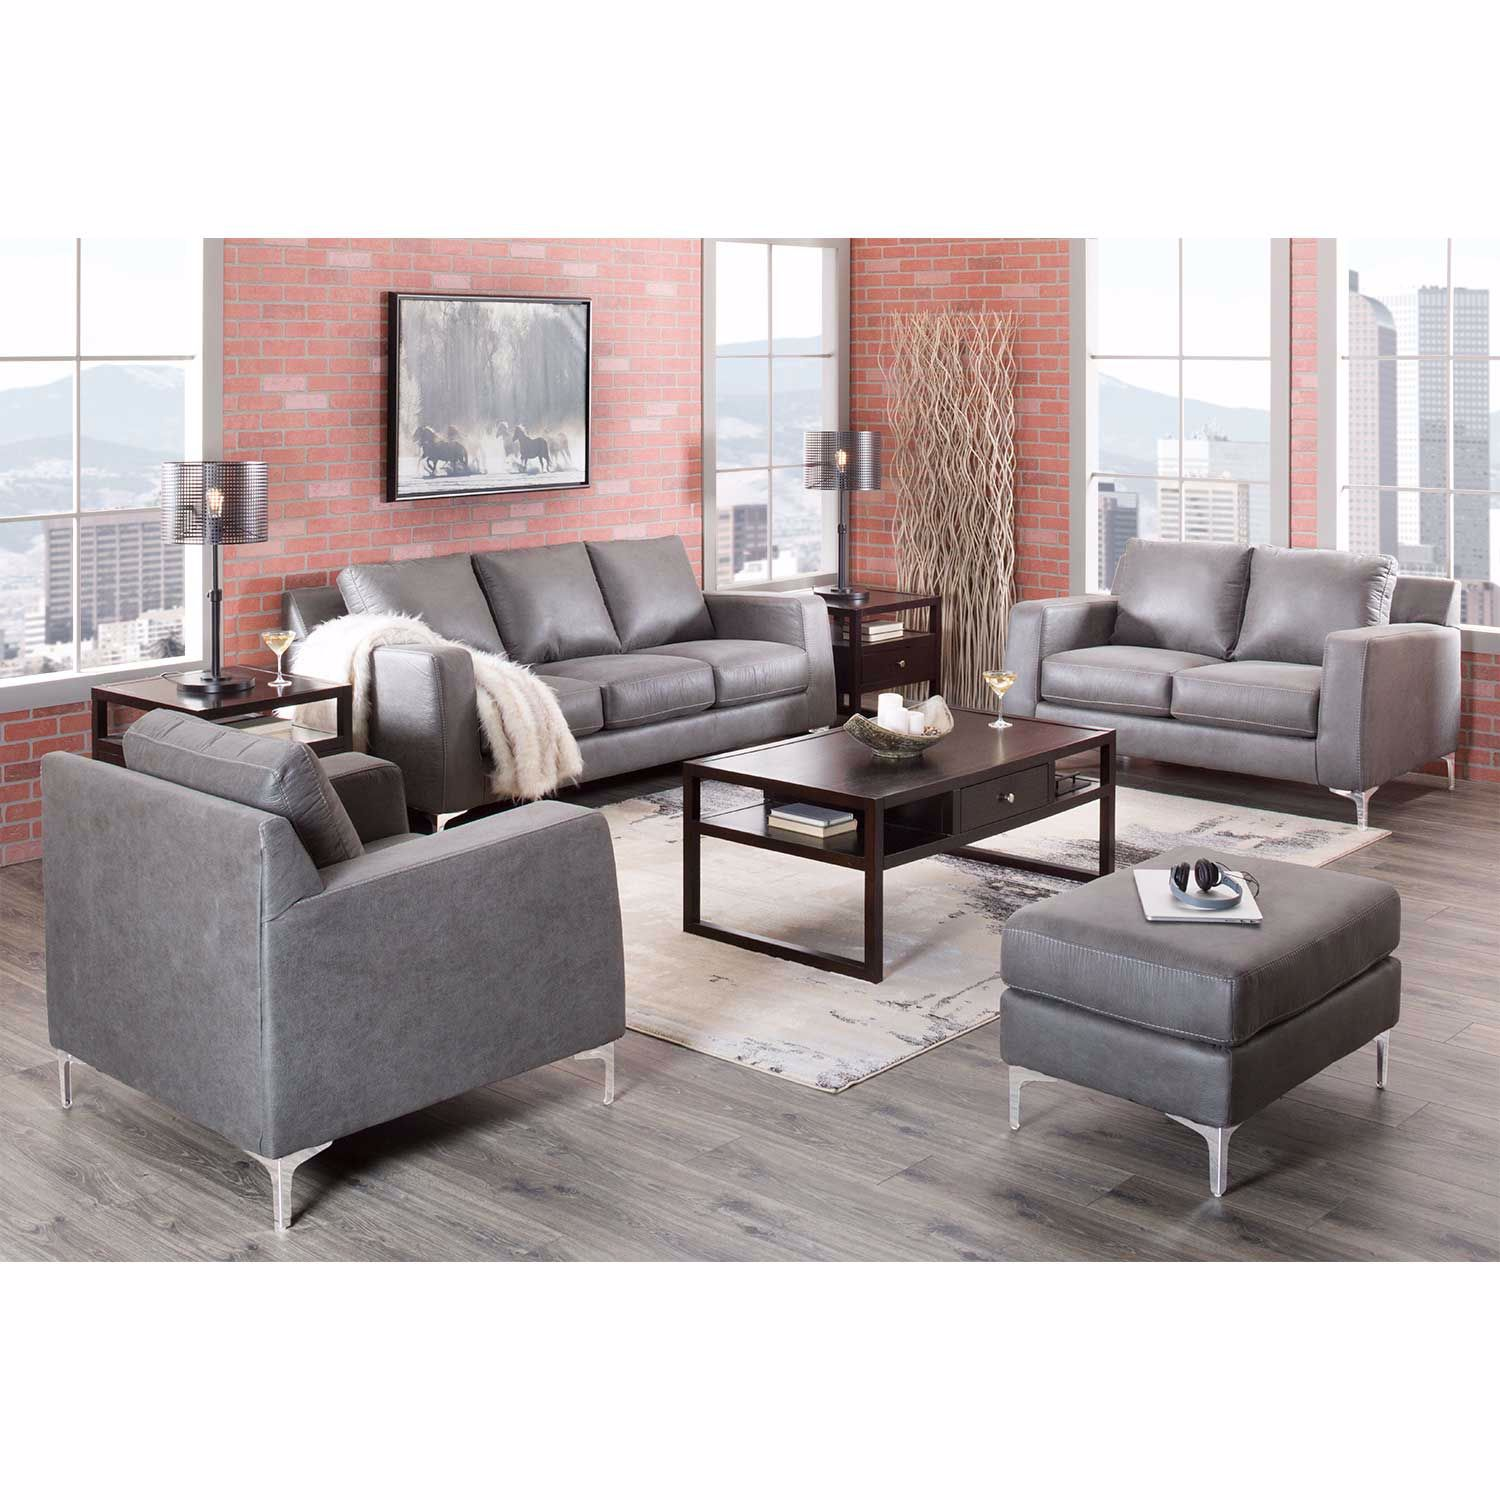 Picture of Ryler Charcoal Ottoman